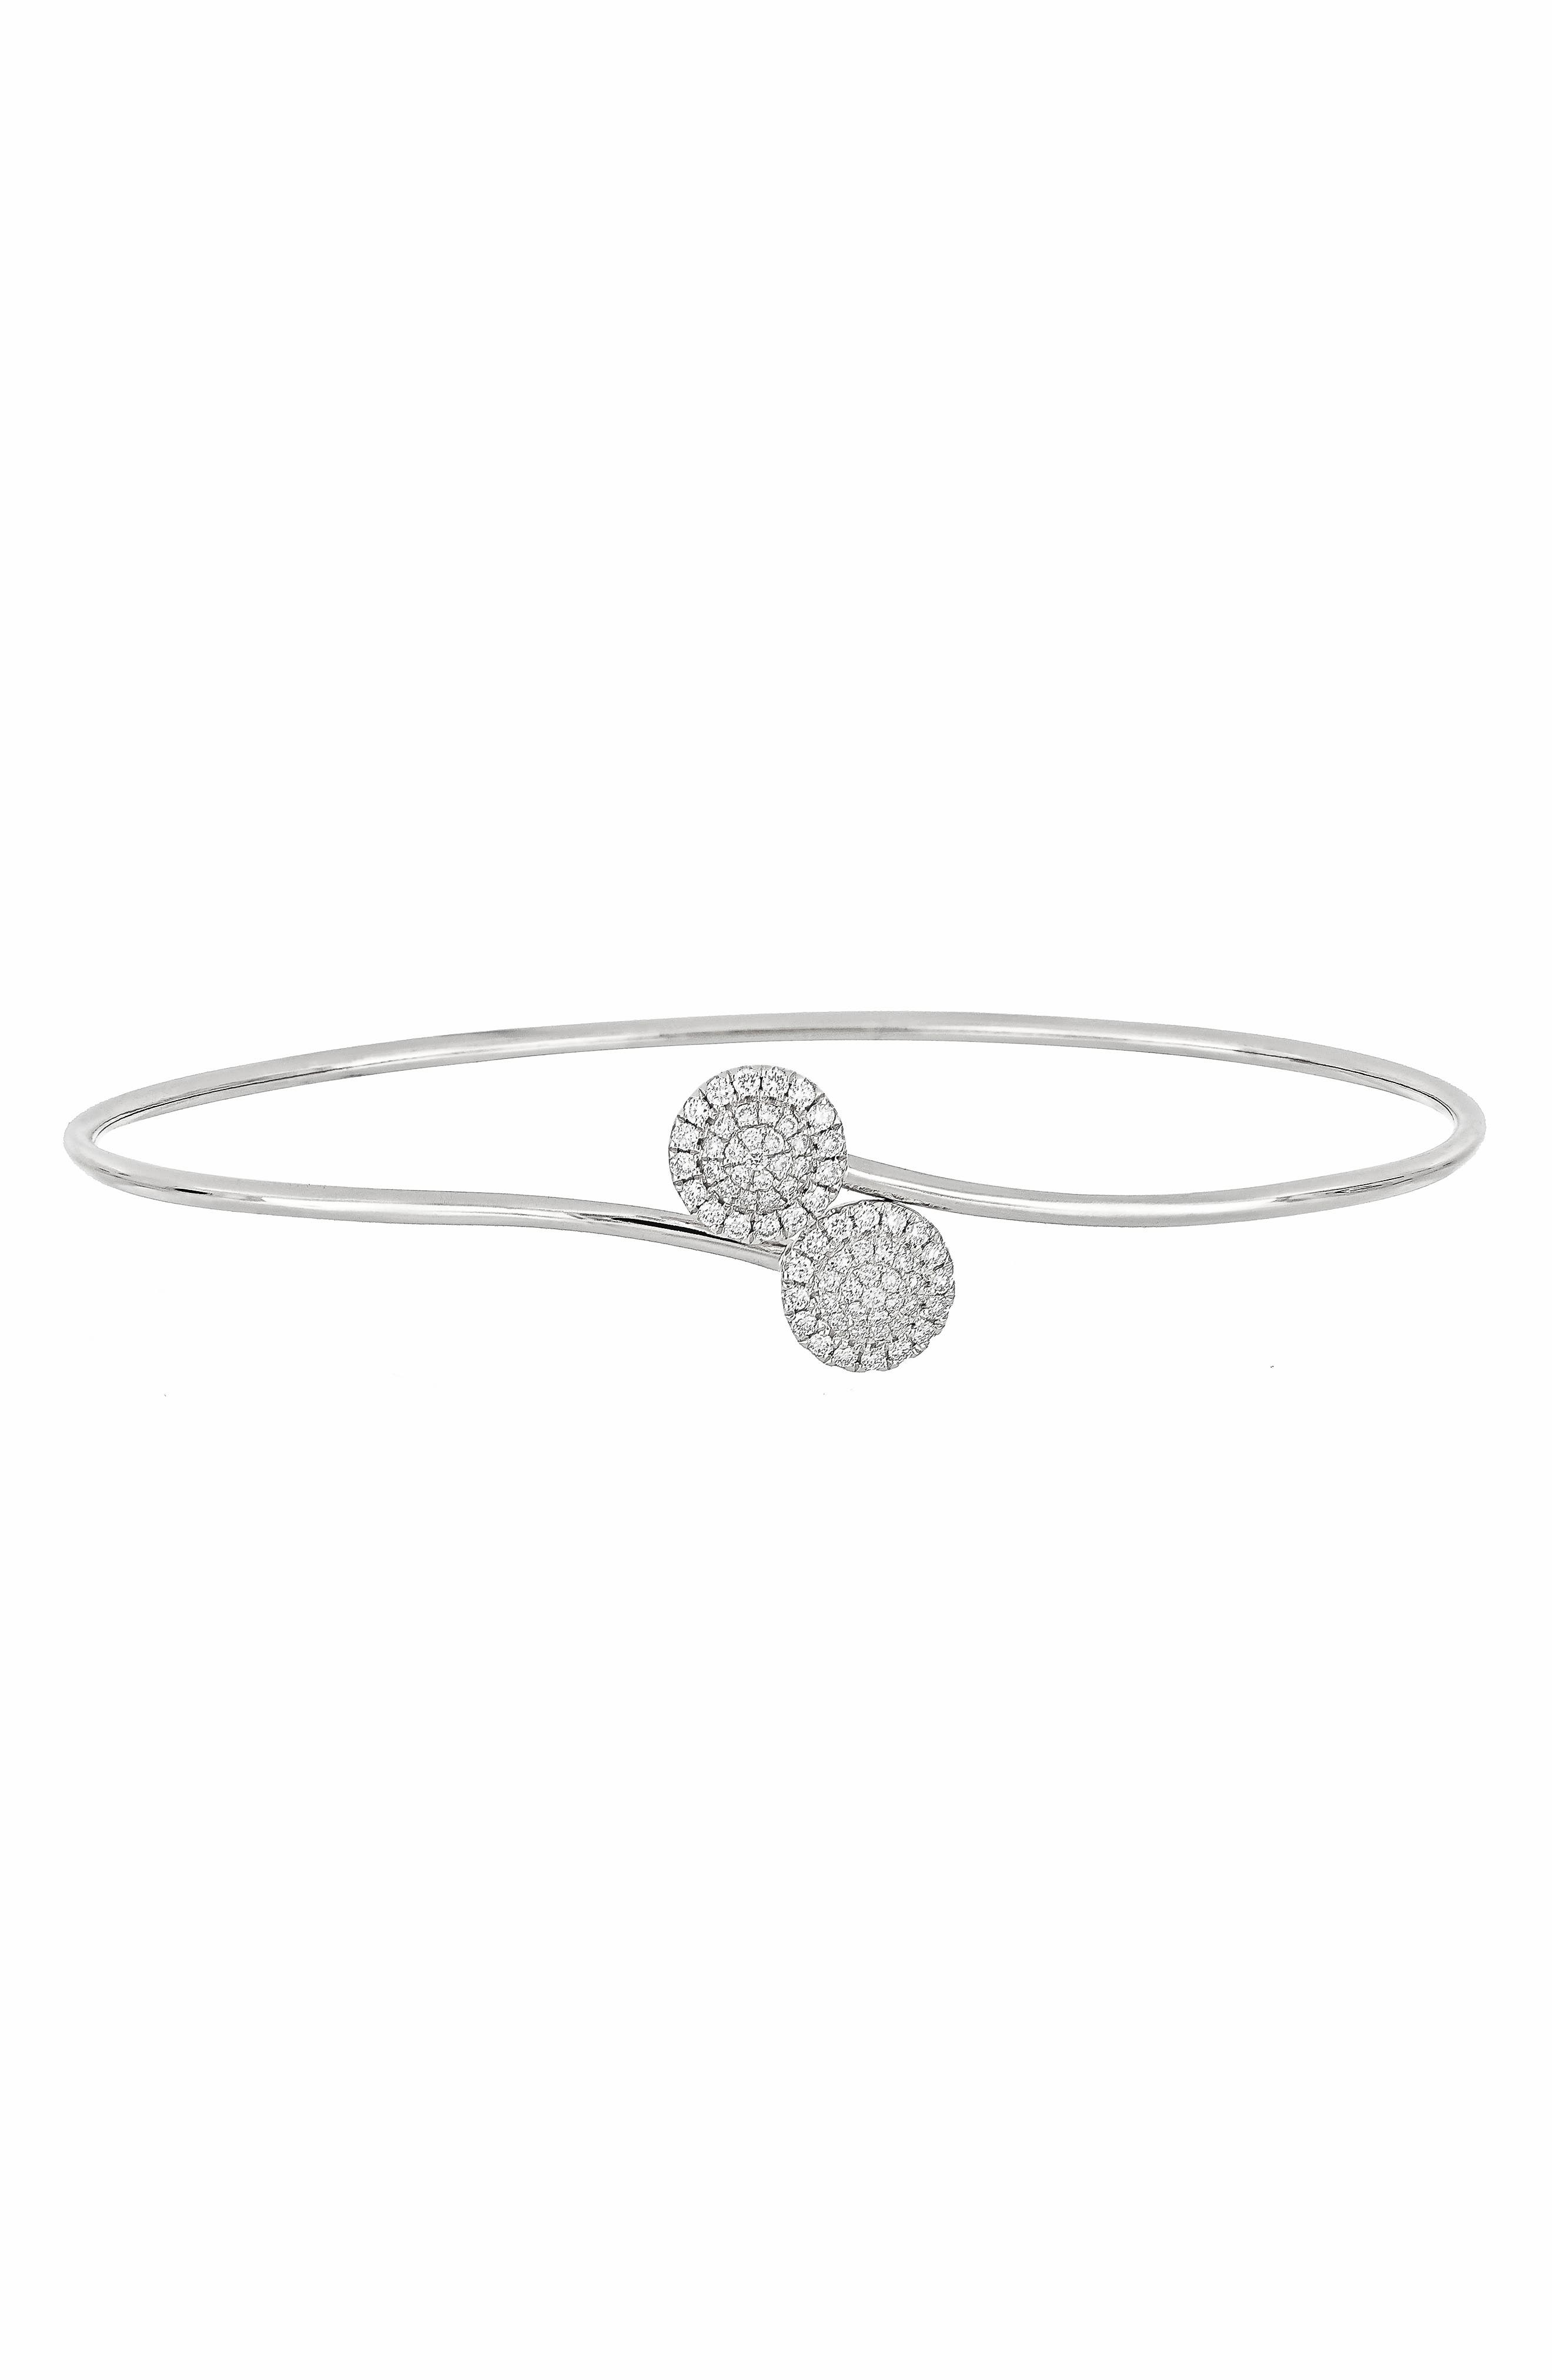 Flower Diamond Bangle,                         Main,                         color, White Gold